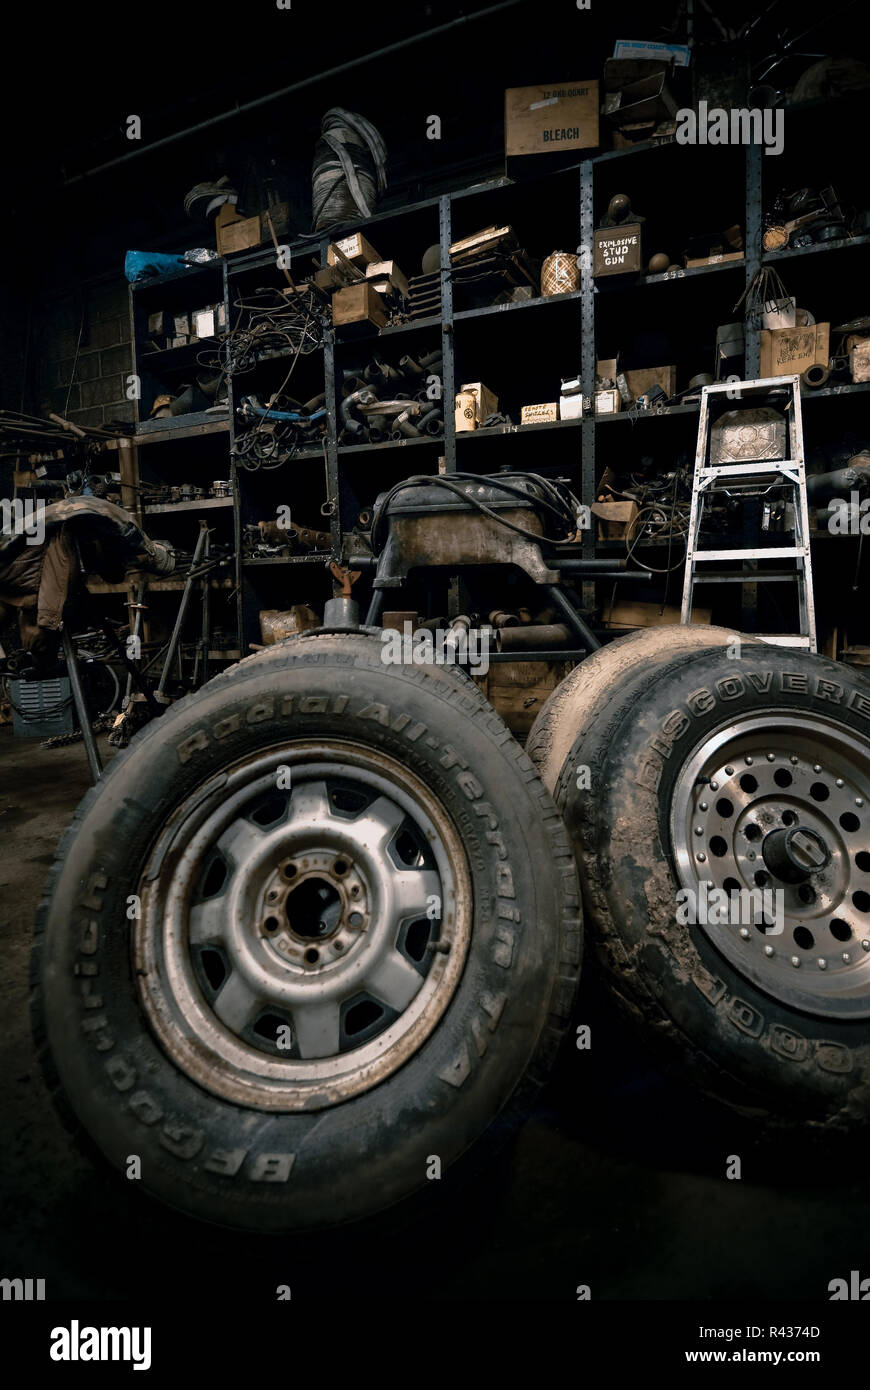 Tires are at the forefront of this scene in a darkly lit machine shop. - Stock Image